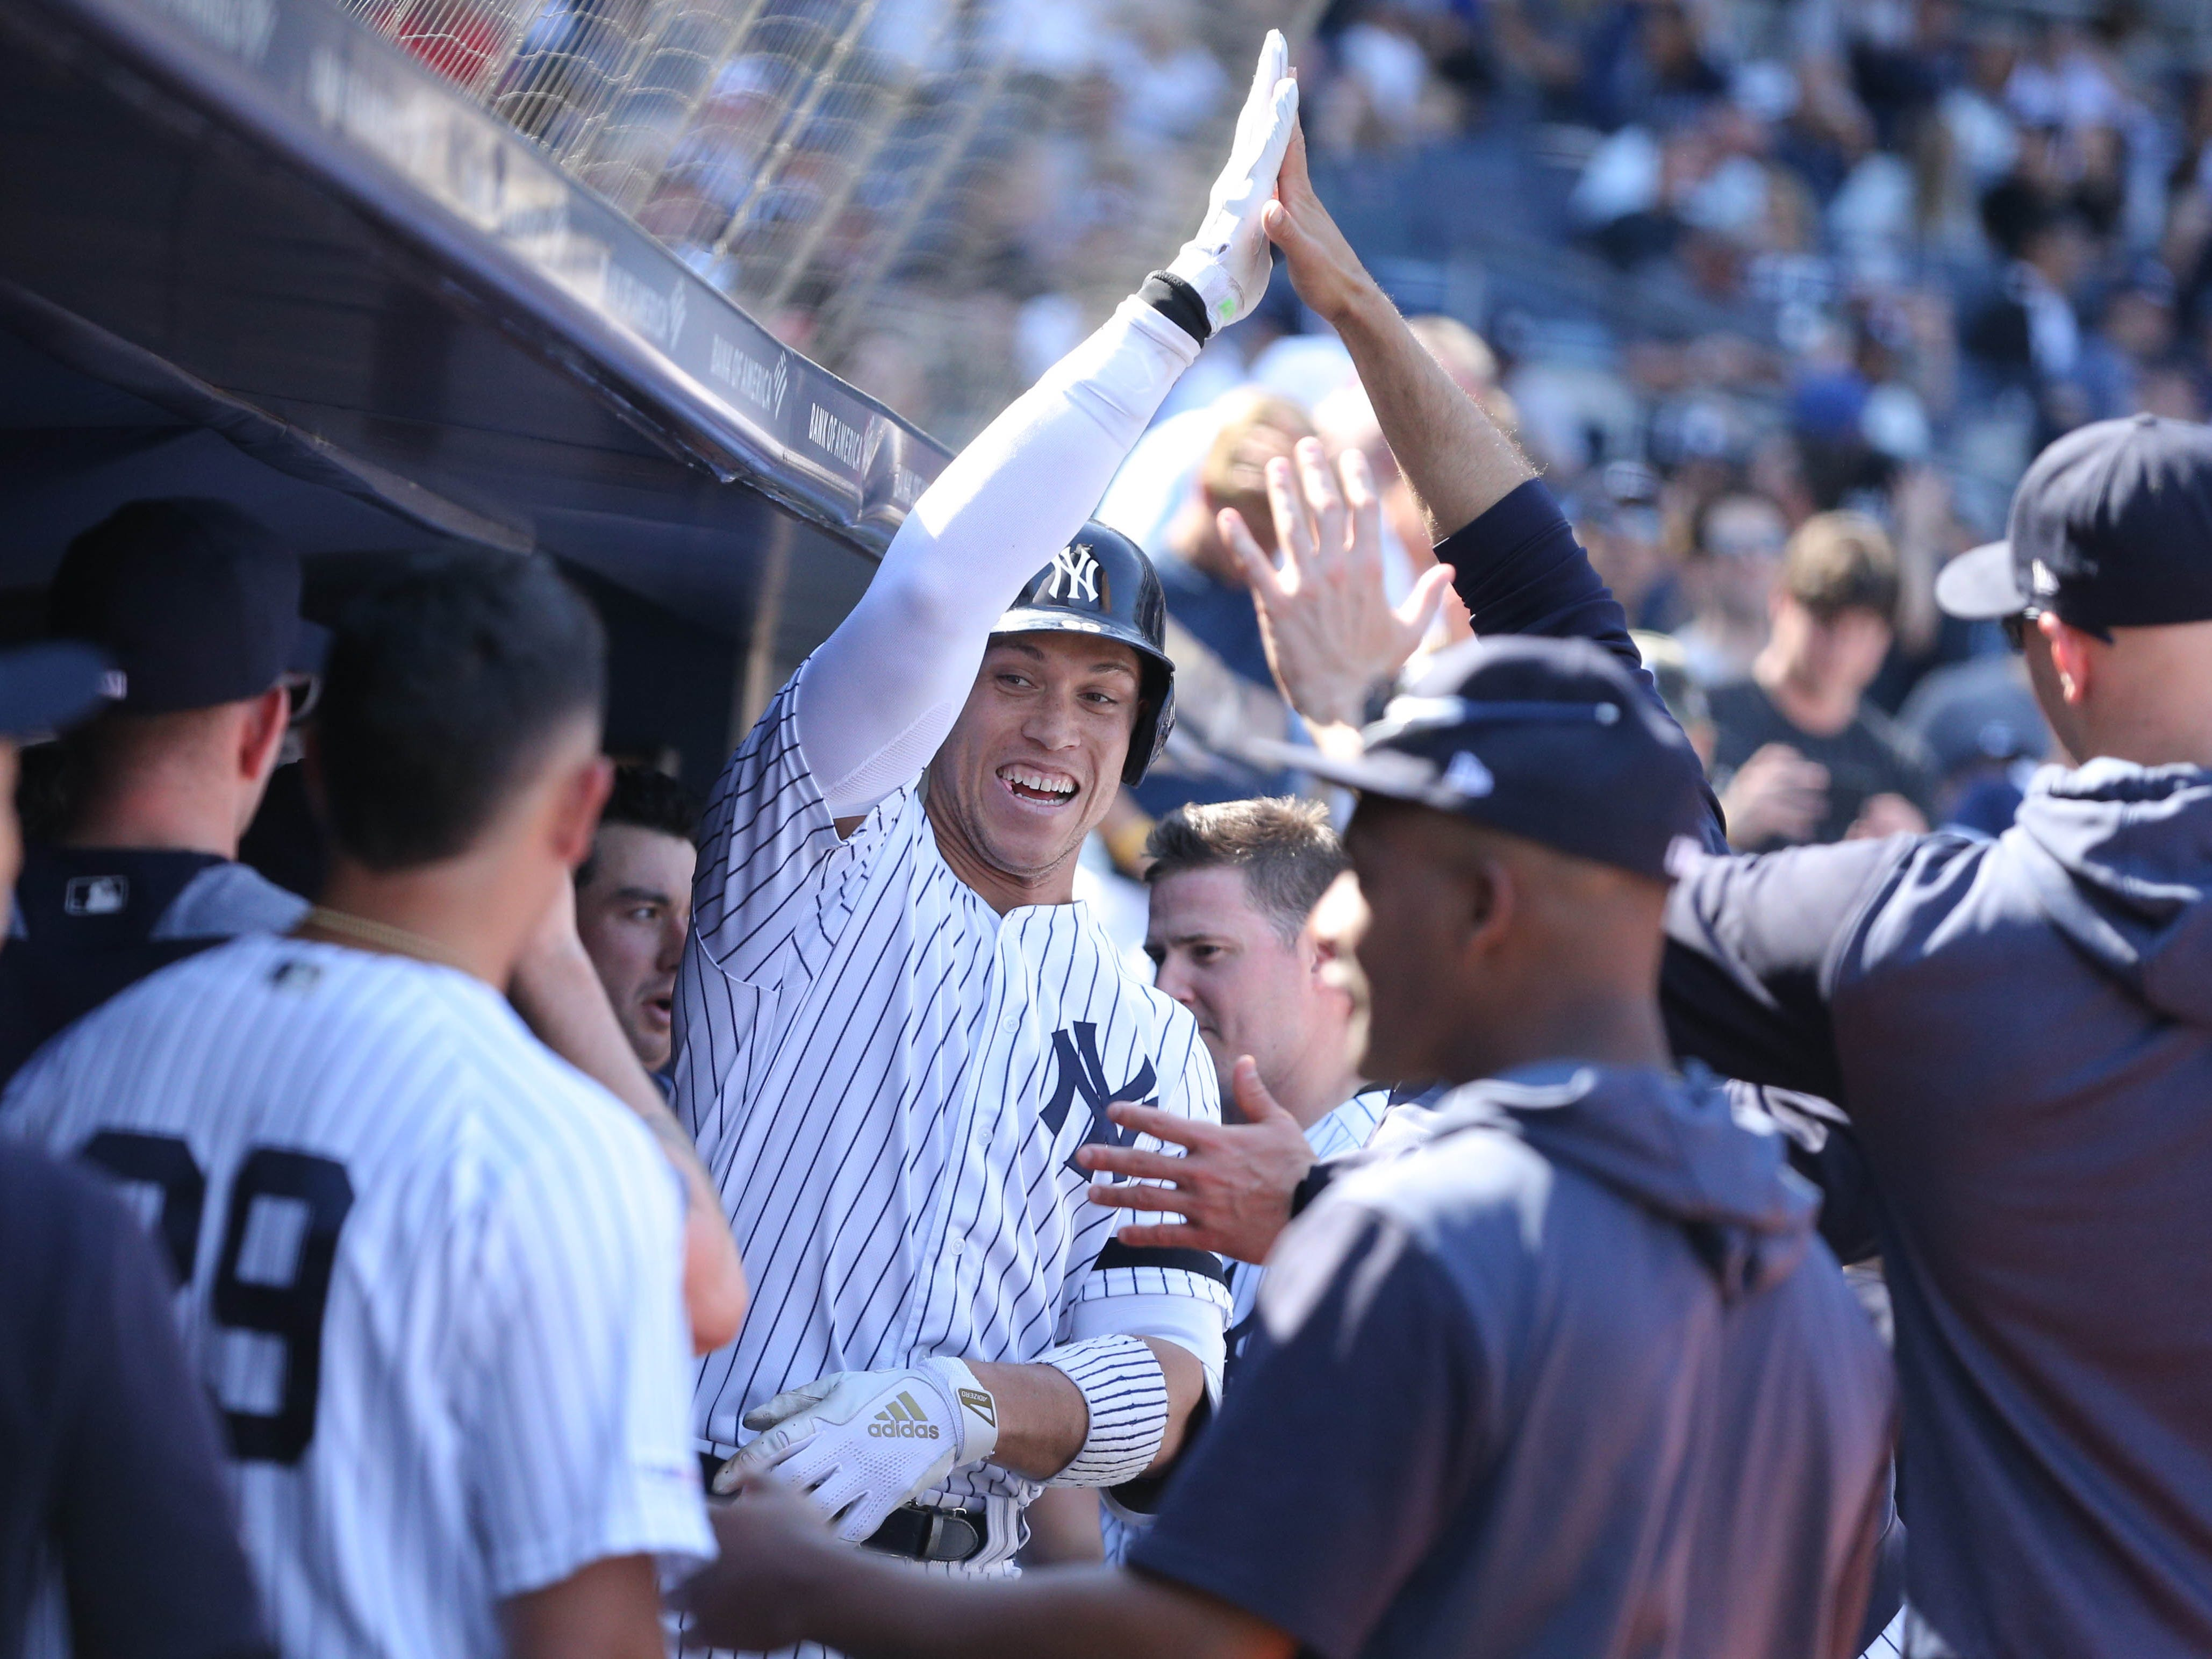 Apr 13, 2019; Bronx, NY, USA; New York Yankees right fielder Aaron Judge (99) celebrates his solo home run against the Chicago White Sox with teammates in the dugout during the eighth inning at Yankee Stadium.